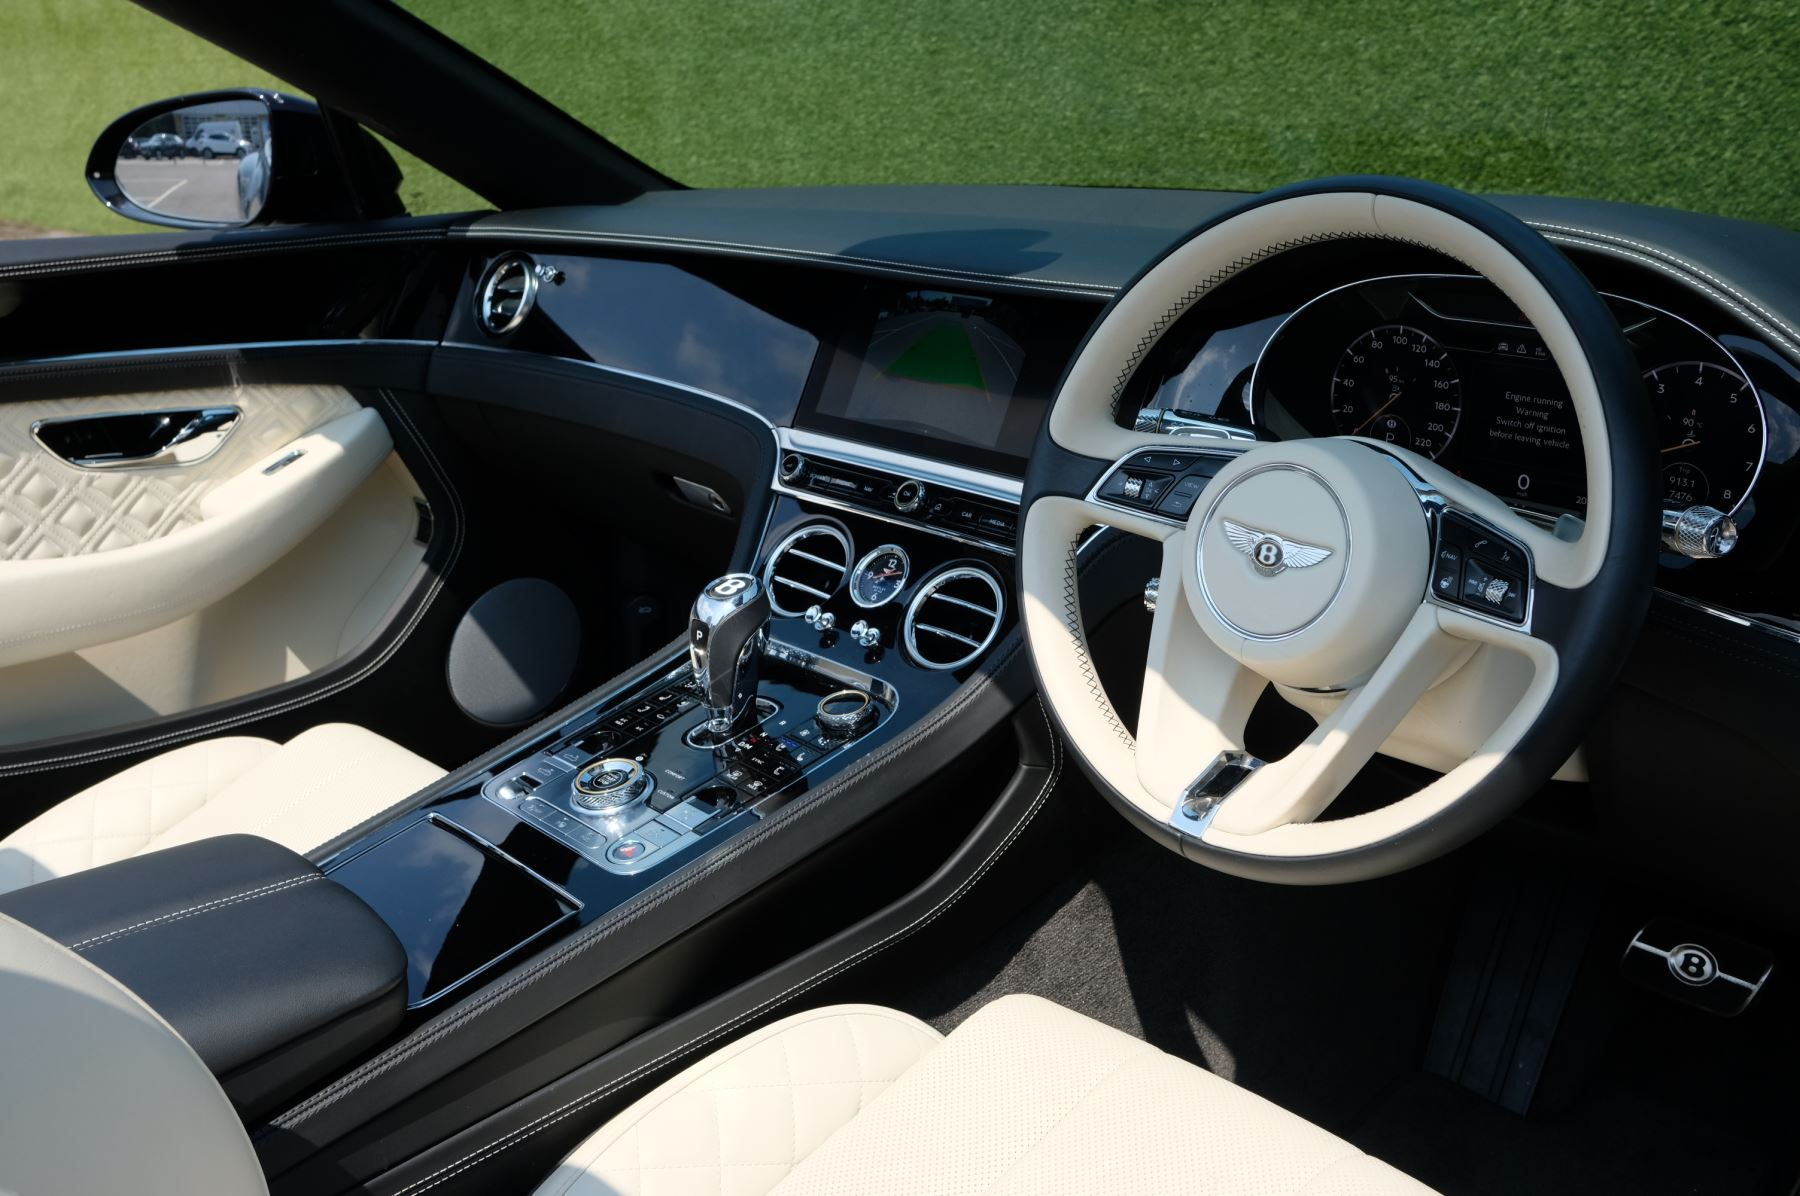 Bentley Continental GTC 6.0 W12 - Mulliner Driving Specification and Centenary Specification image 10